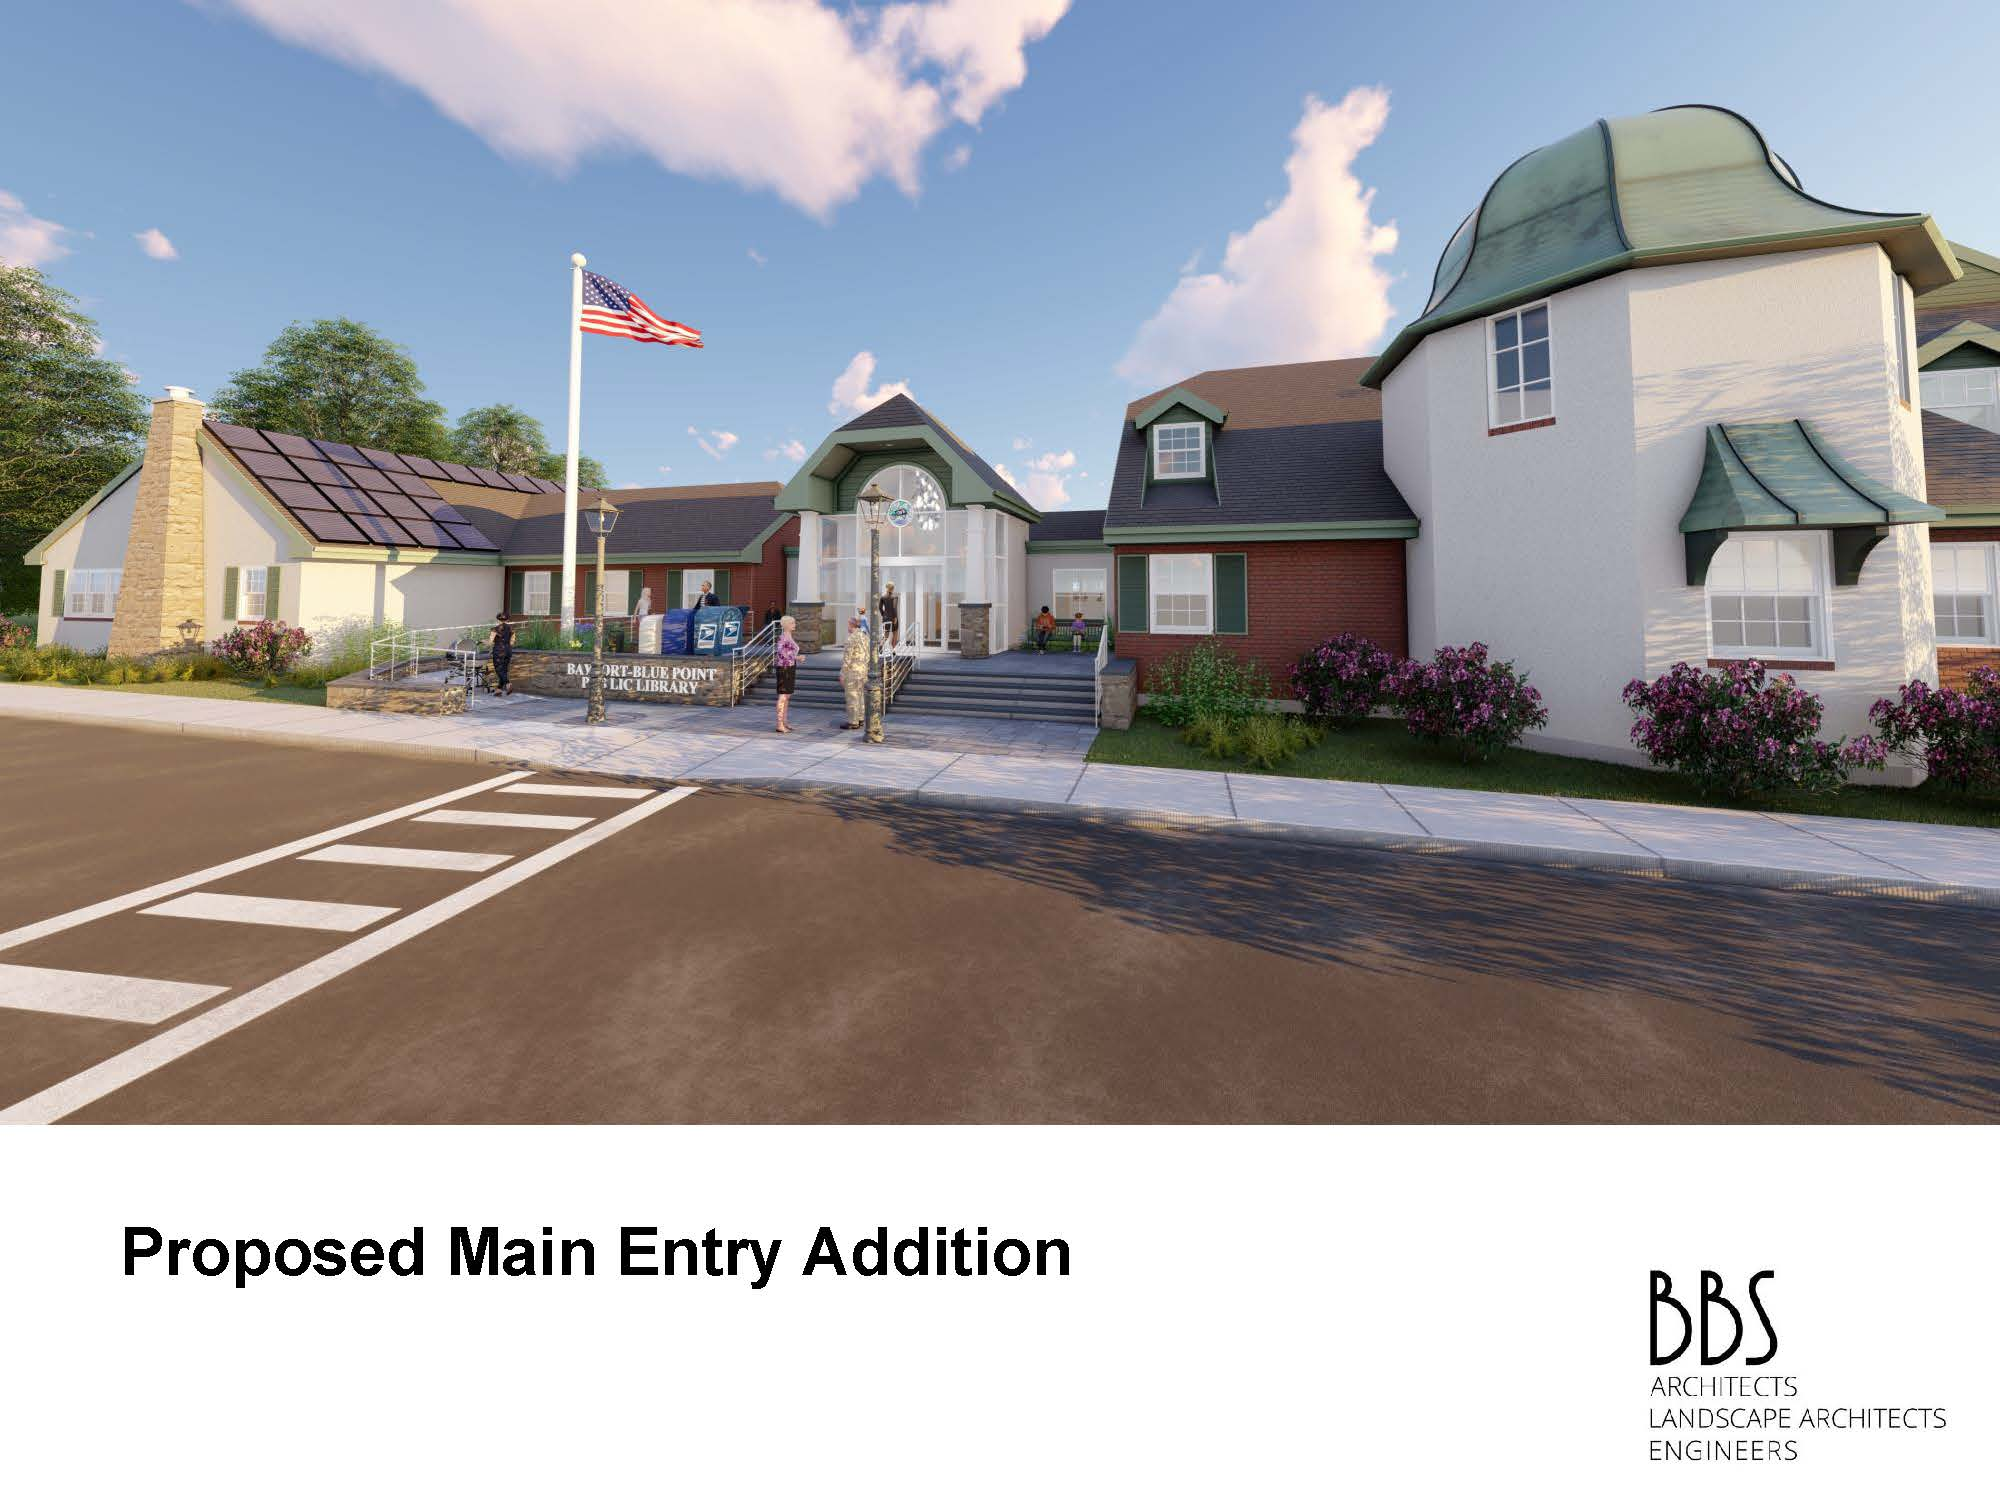 Drawing of the proposed main entry addition